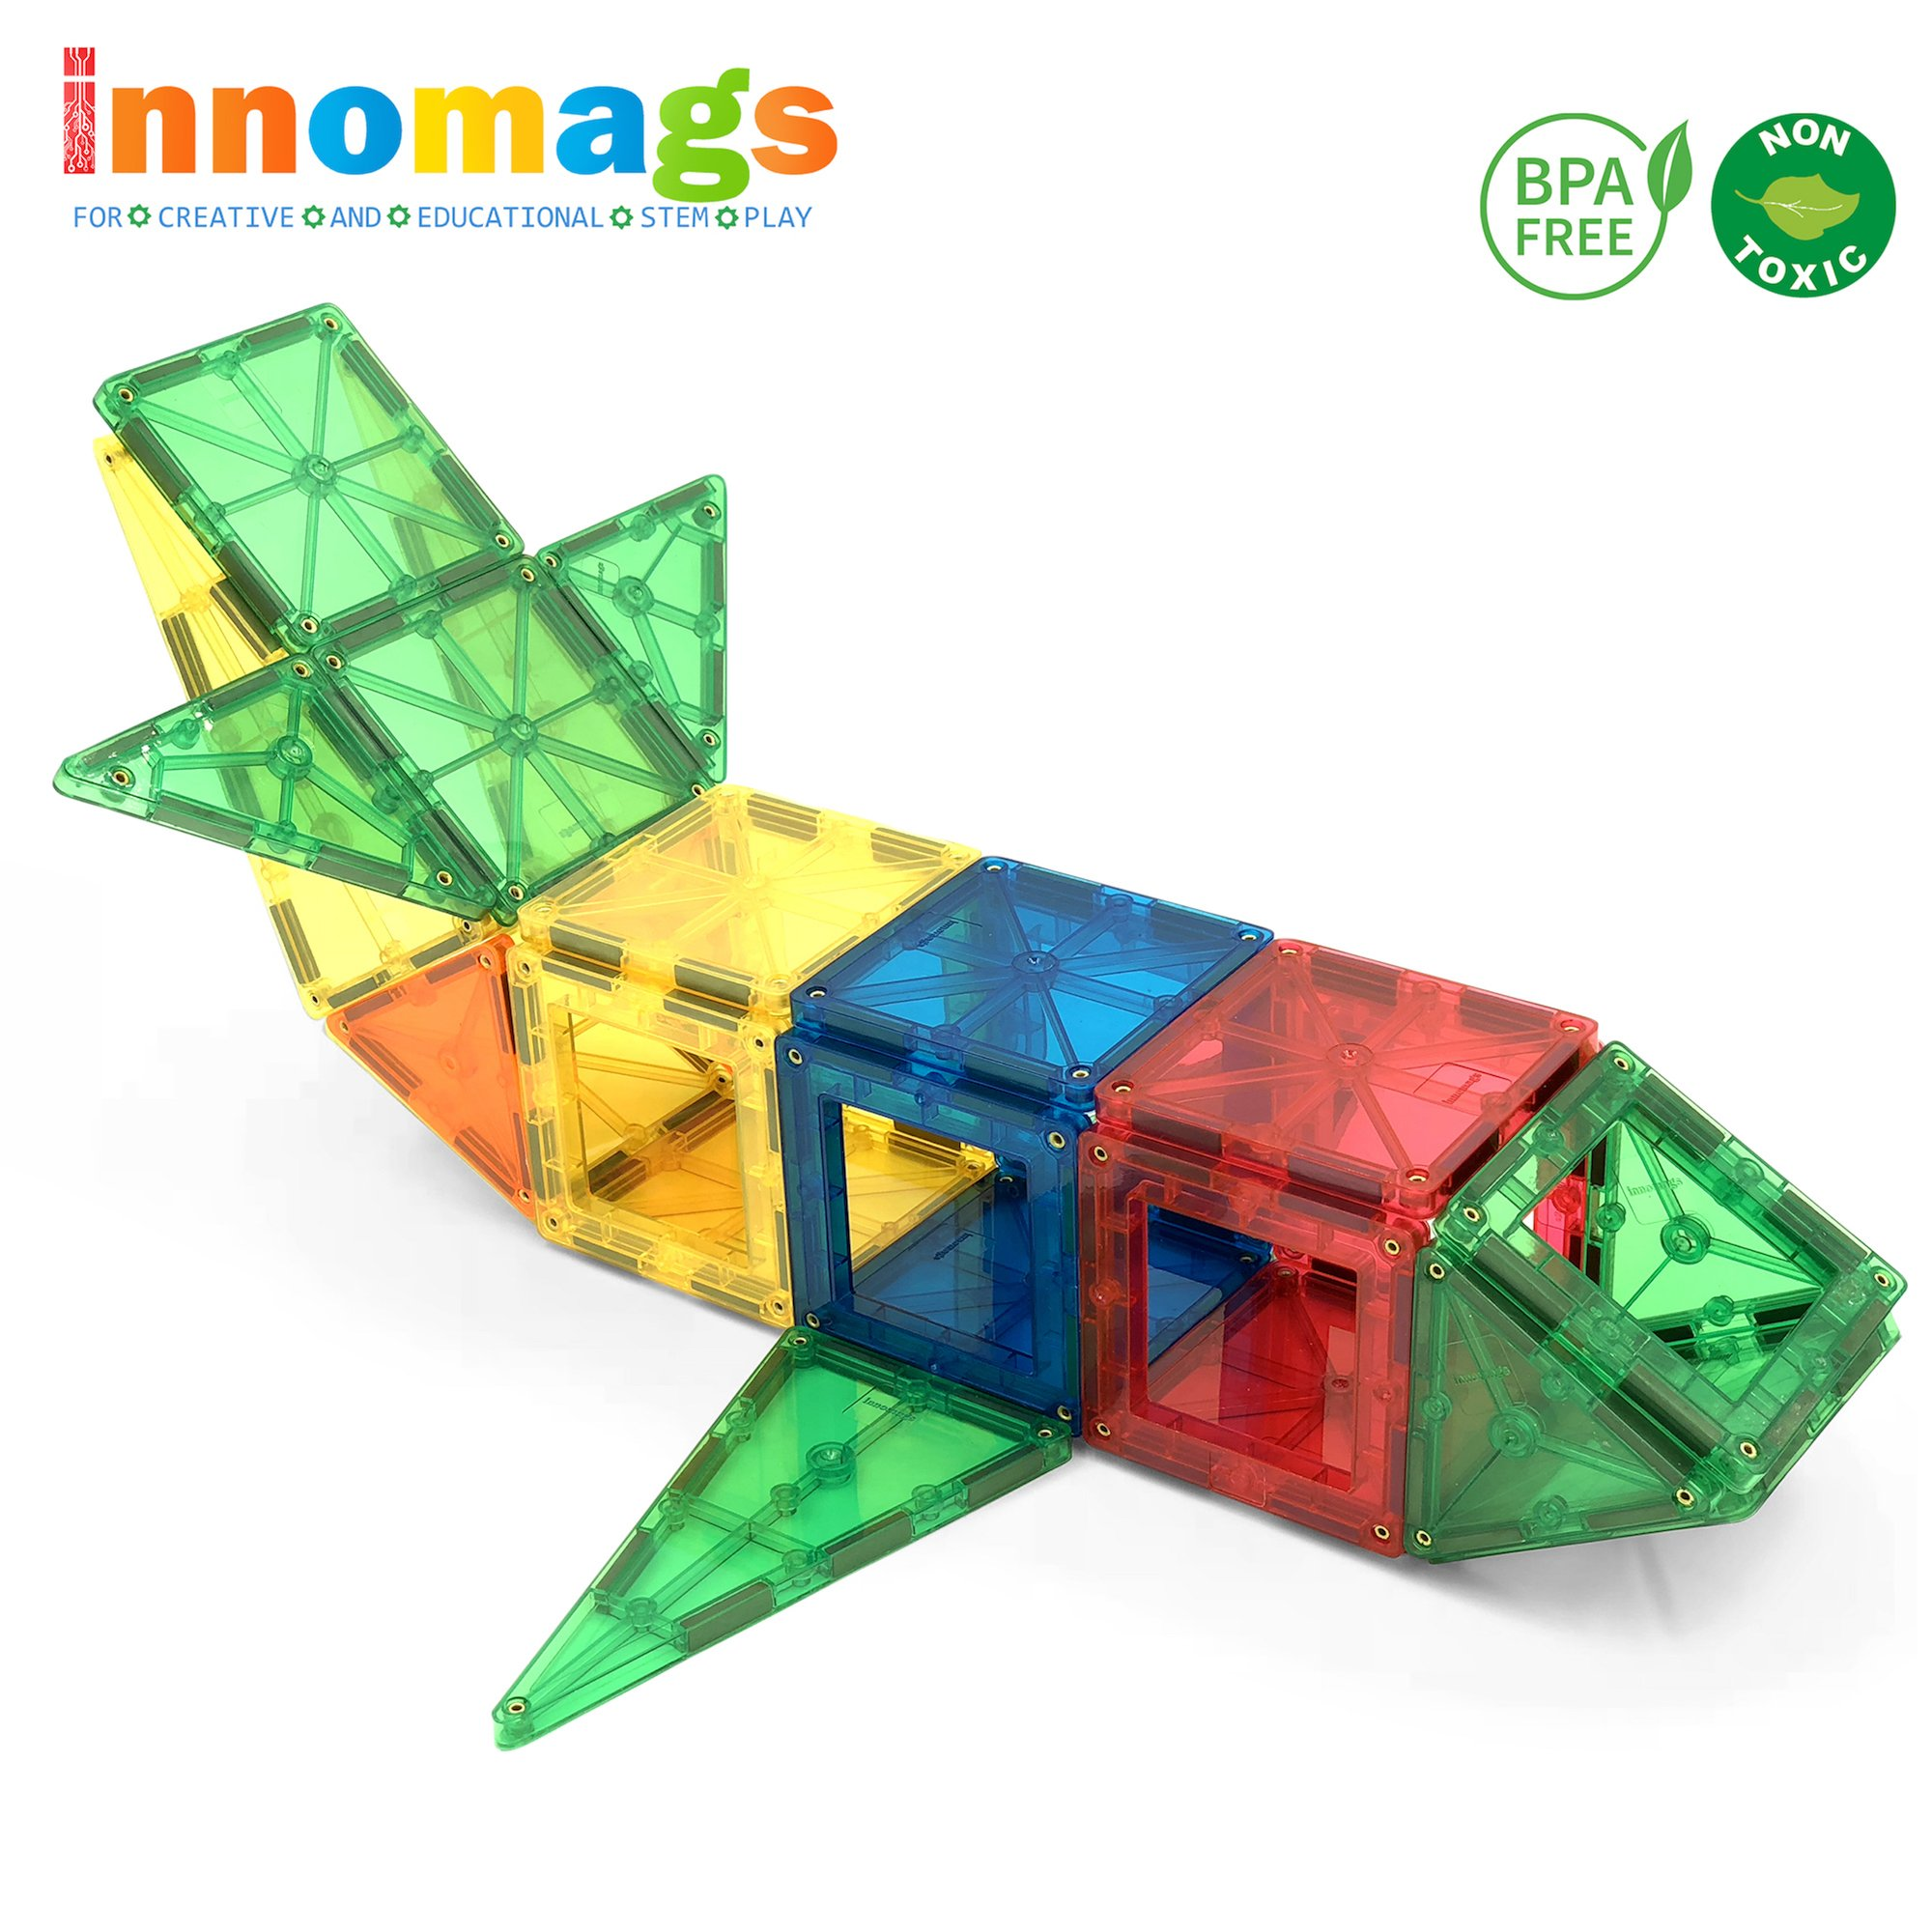 Innomags Magnet Tiles 32 Piece Magnetic Building Blocks Tile Set, Clear 3D Magnetic Tiles Stem Educational Construction Playboards Toy for Kids, Creative, Inspirational, Recreational, Safety Certified